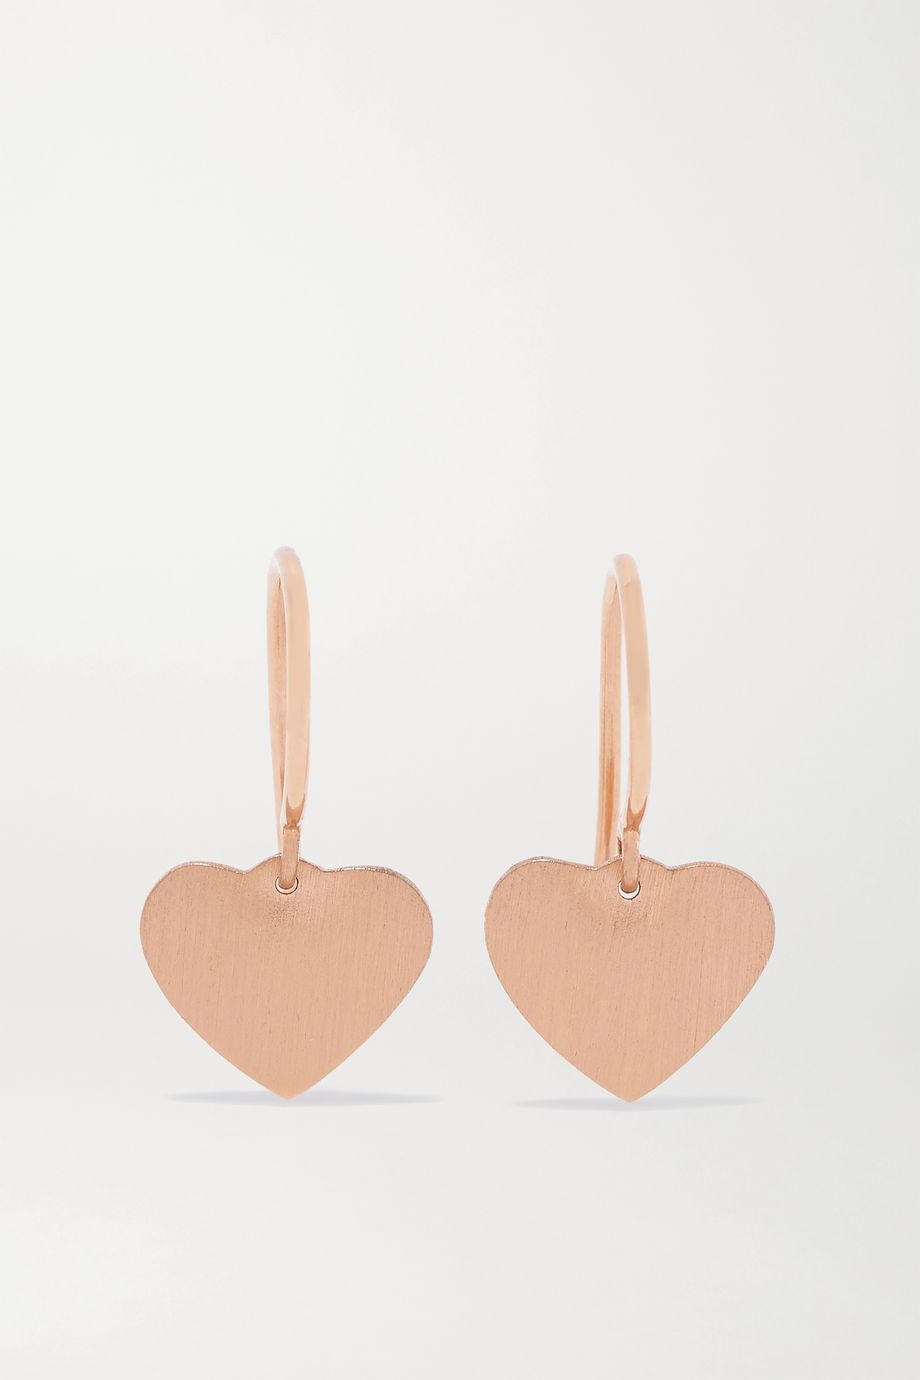 Irene Neuwirth Love 18-karat rose gold earrings